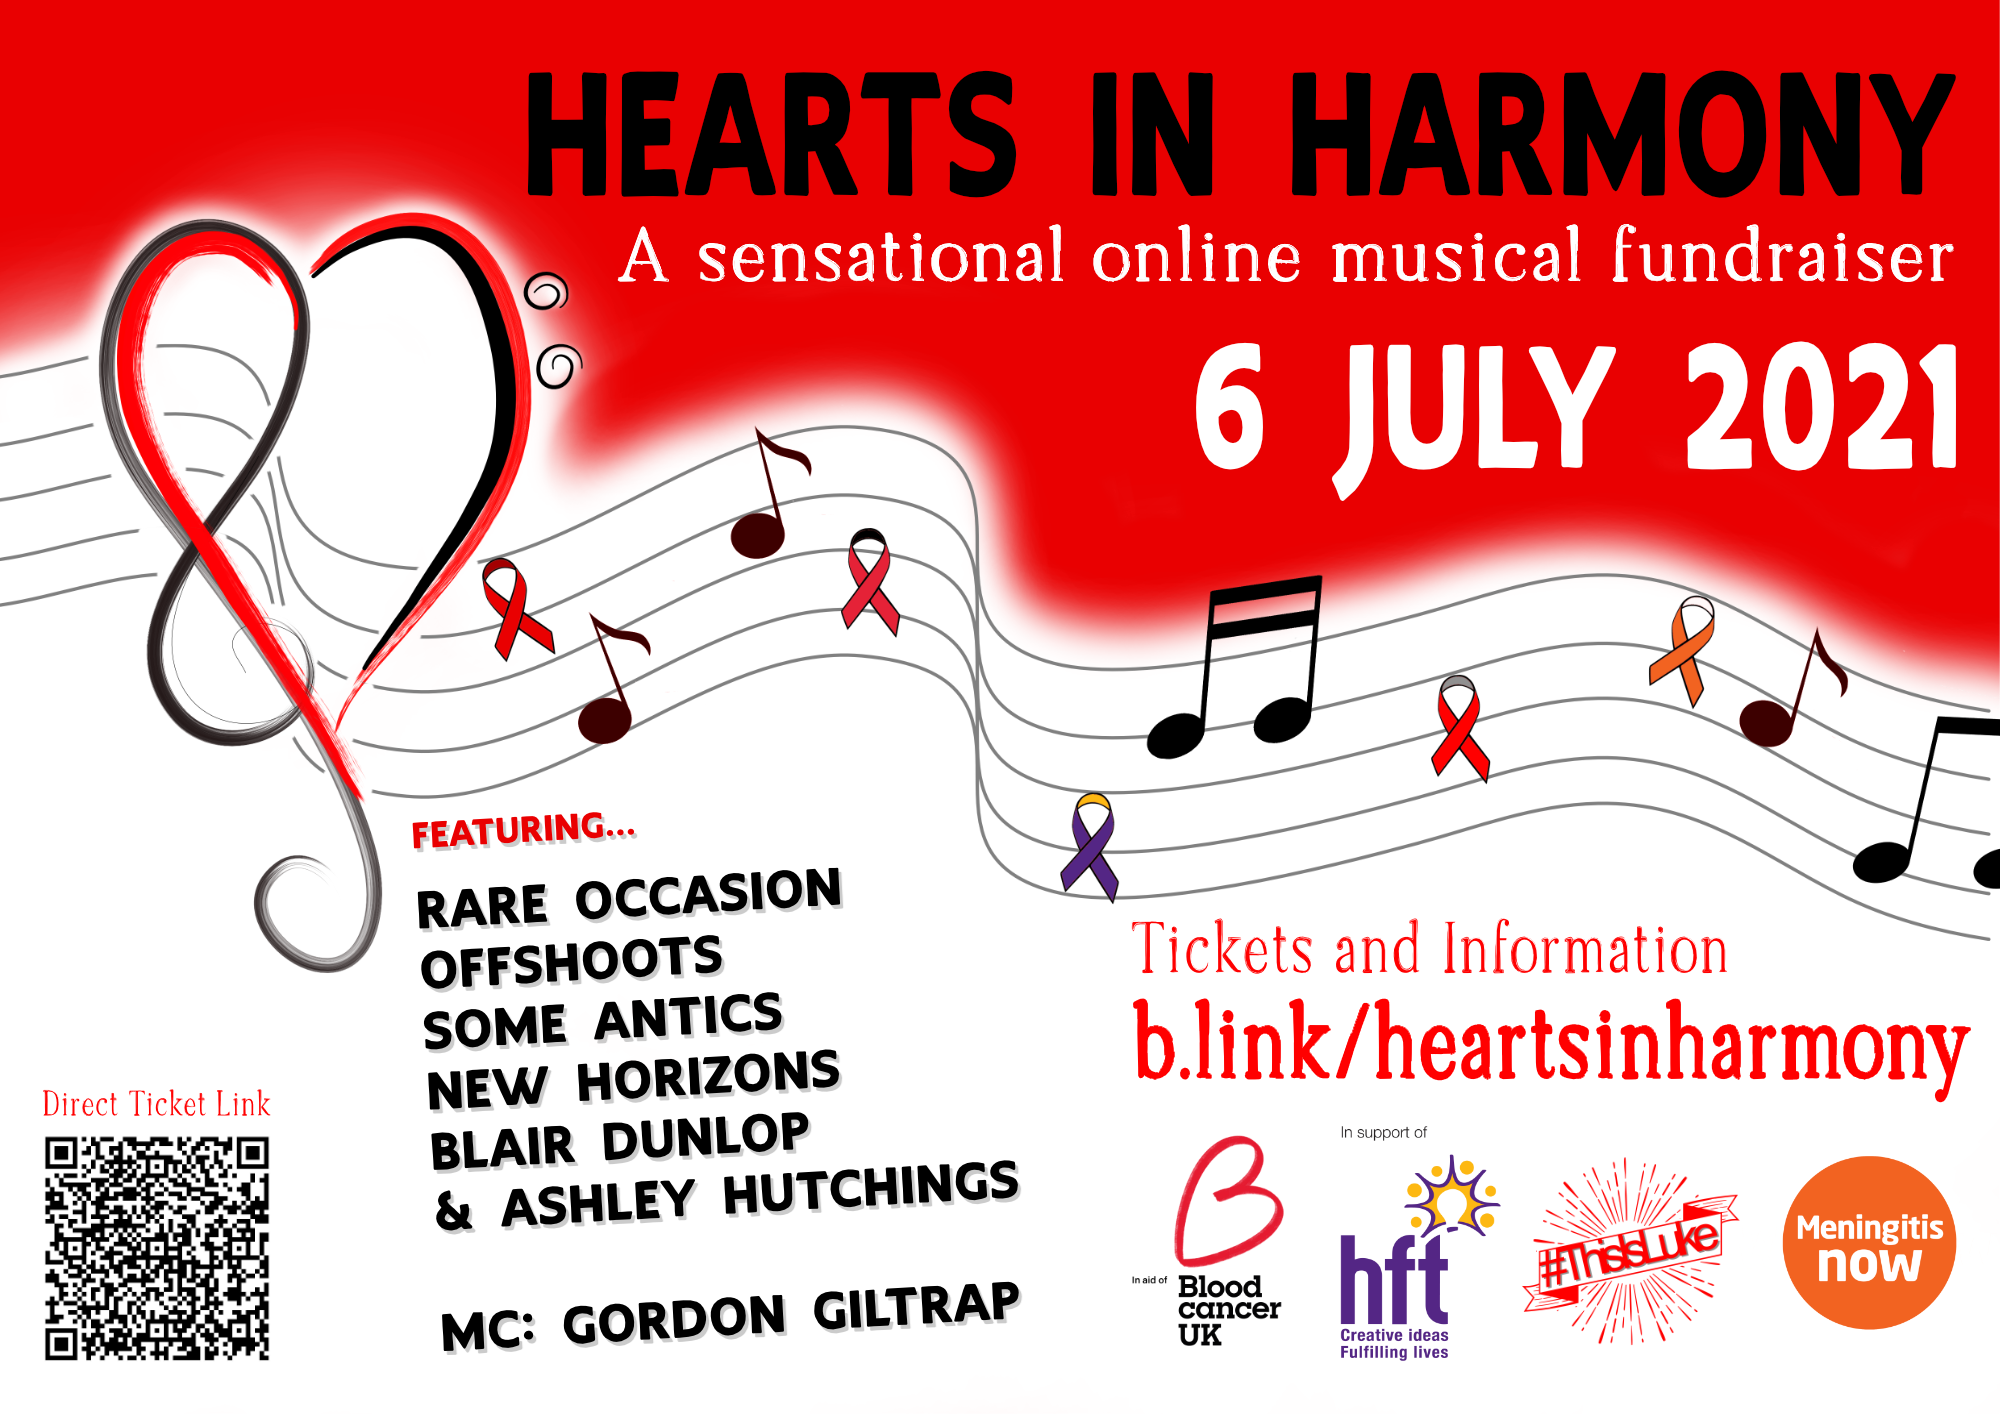 Hearts in Harmony Event poster with heart and music images.